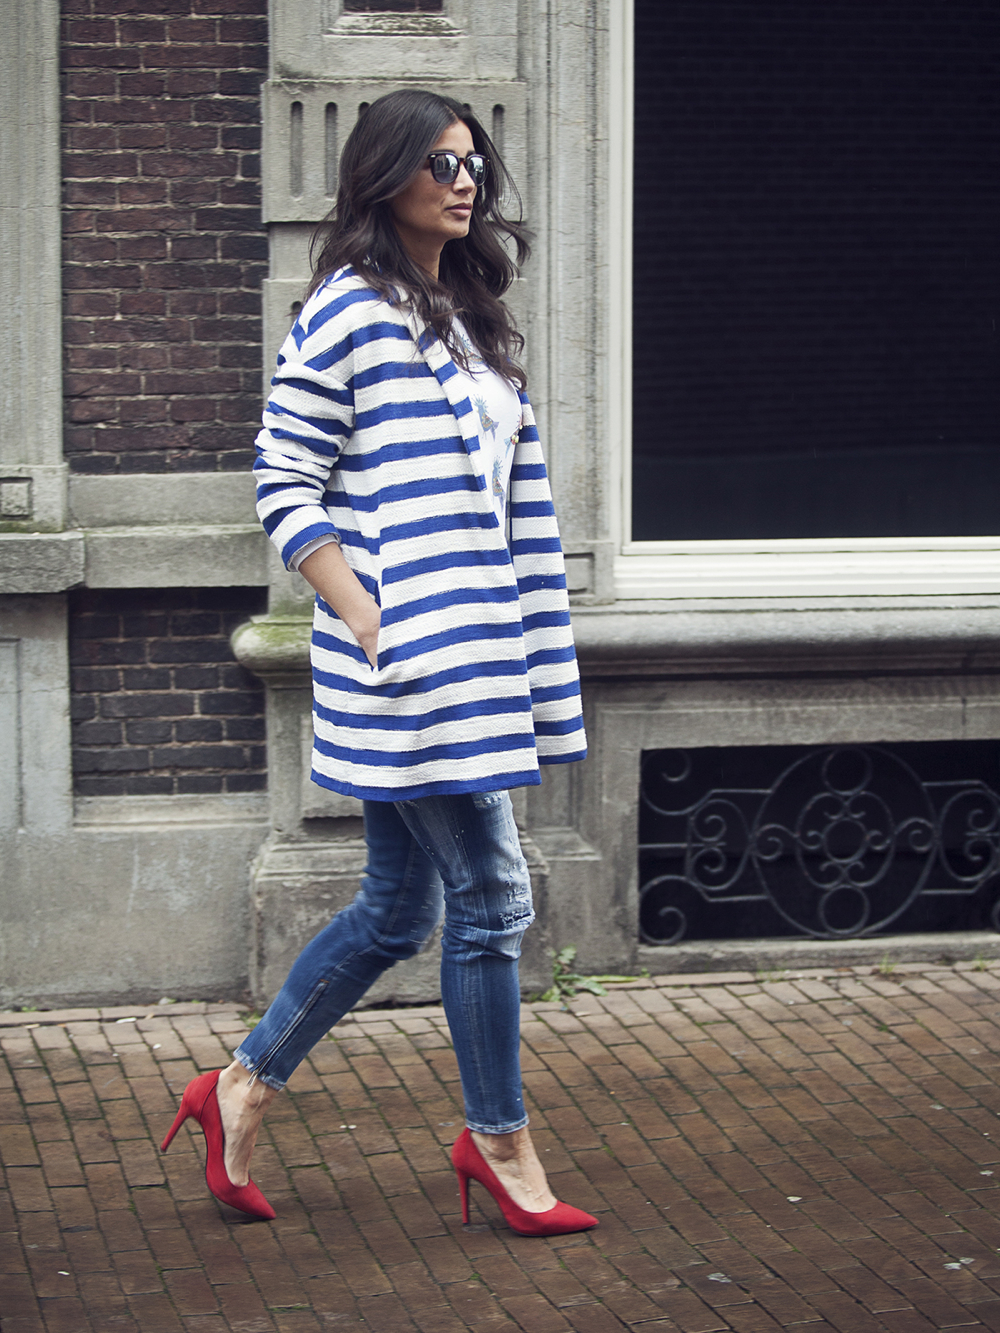 streetstyle look street photography spring 2015 stripes breton red pumps Pinko Dsquared BlogForShops